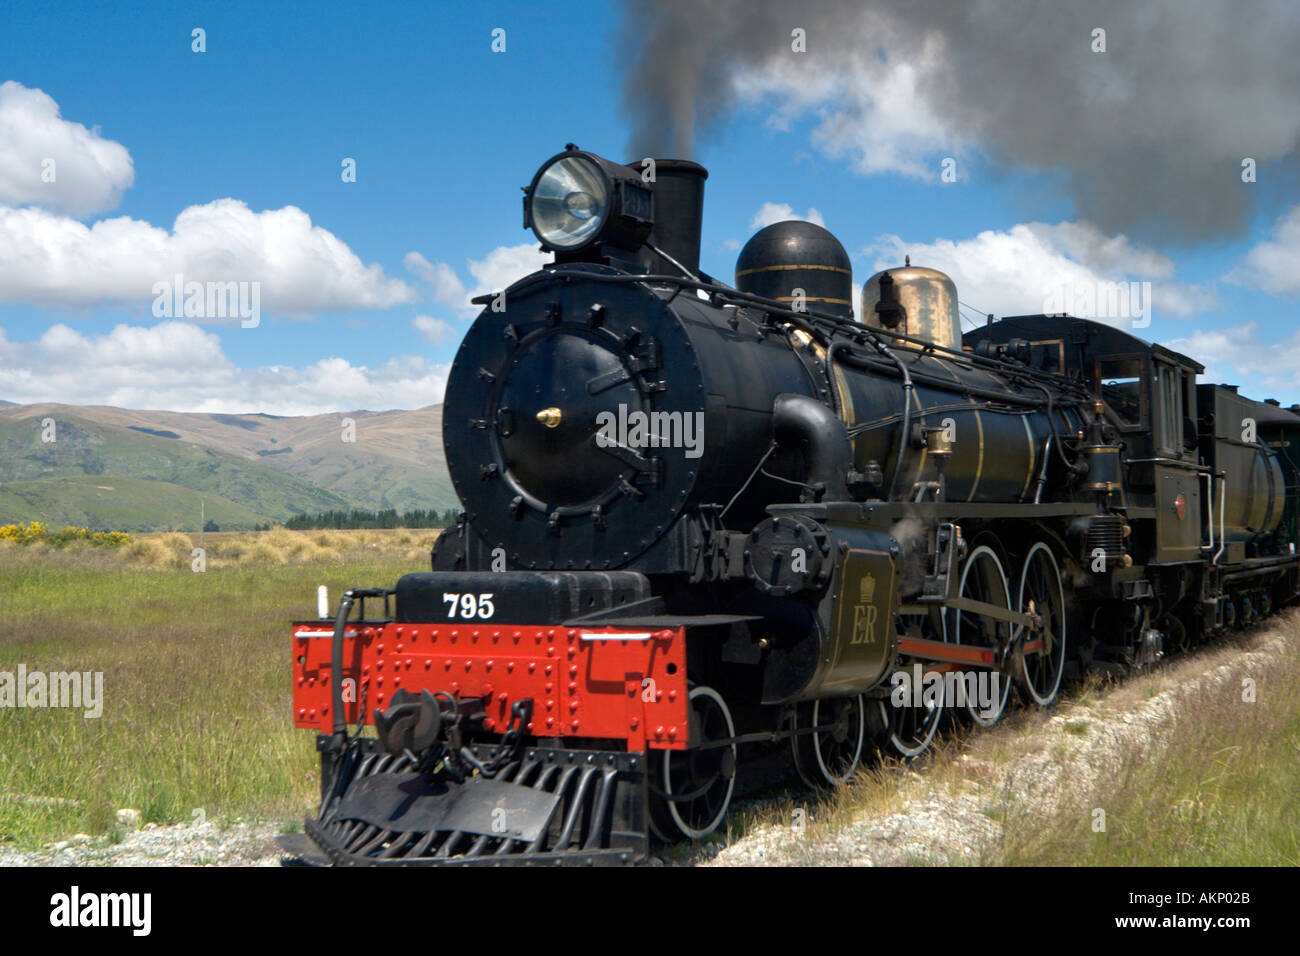 The Kingston Flyer steam train just outside Kingston, near Queenstown, South Island, New Zealand - Stock Image